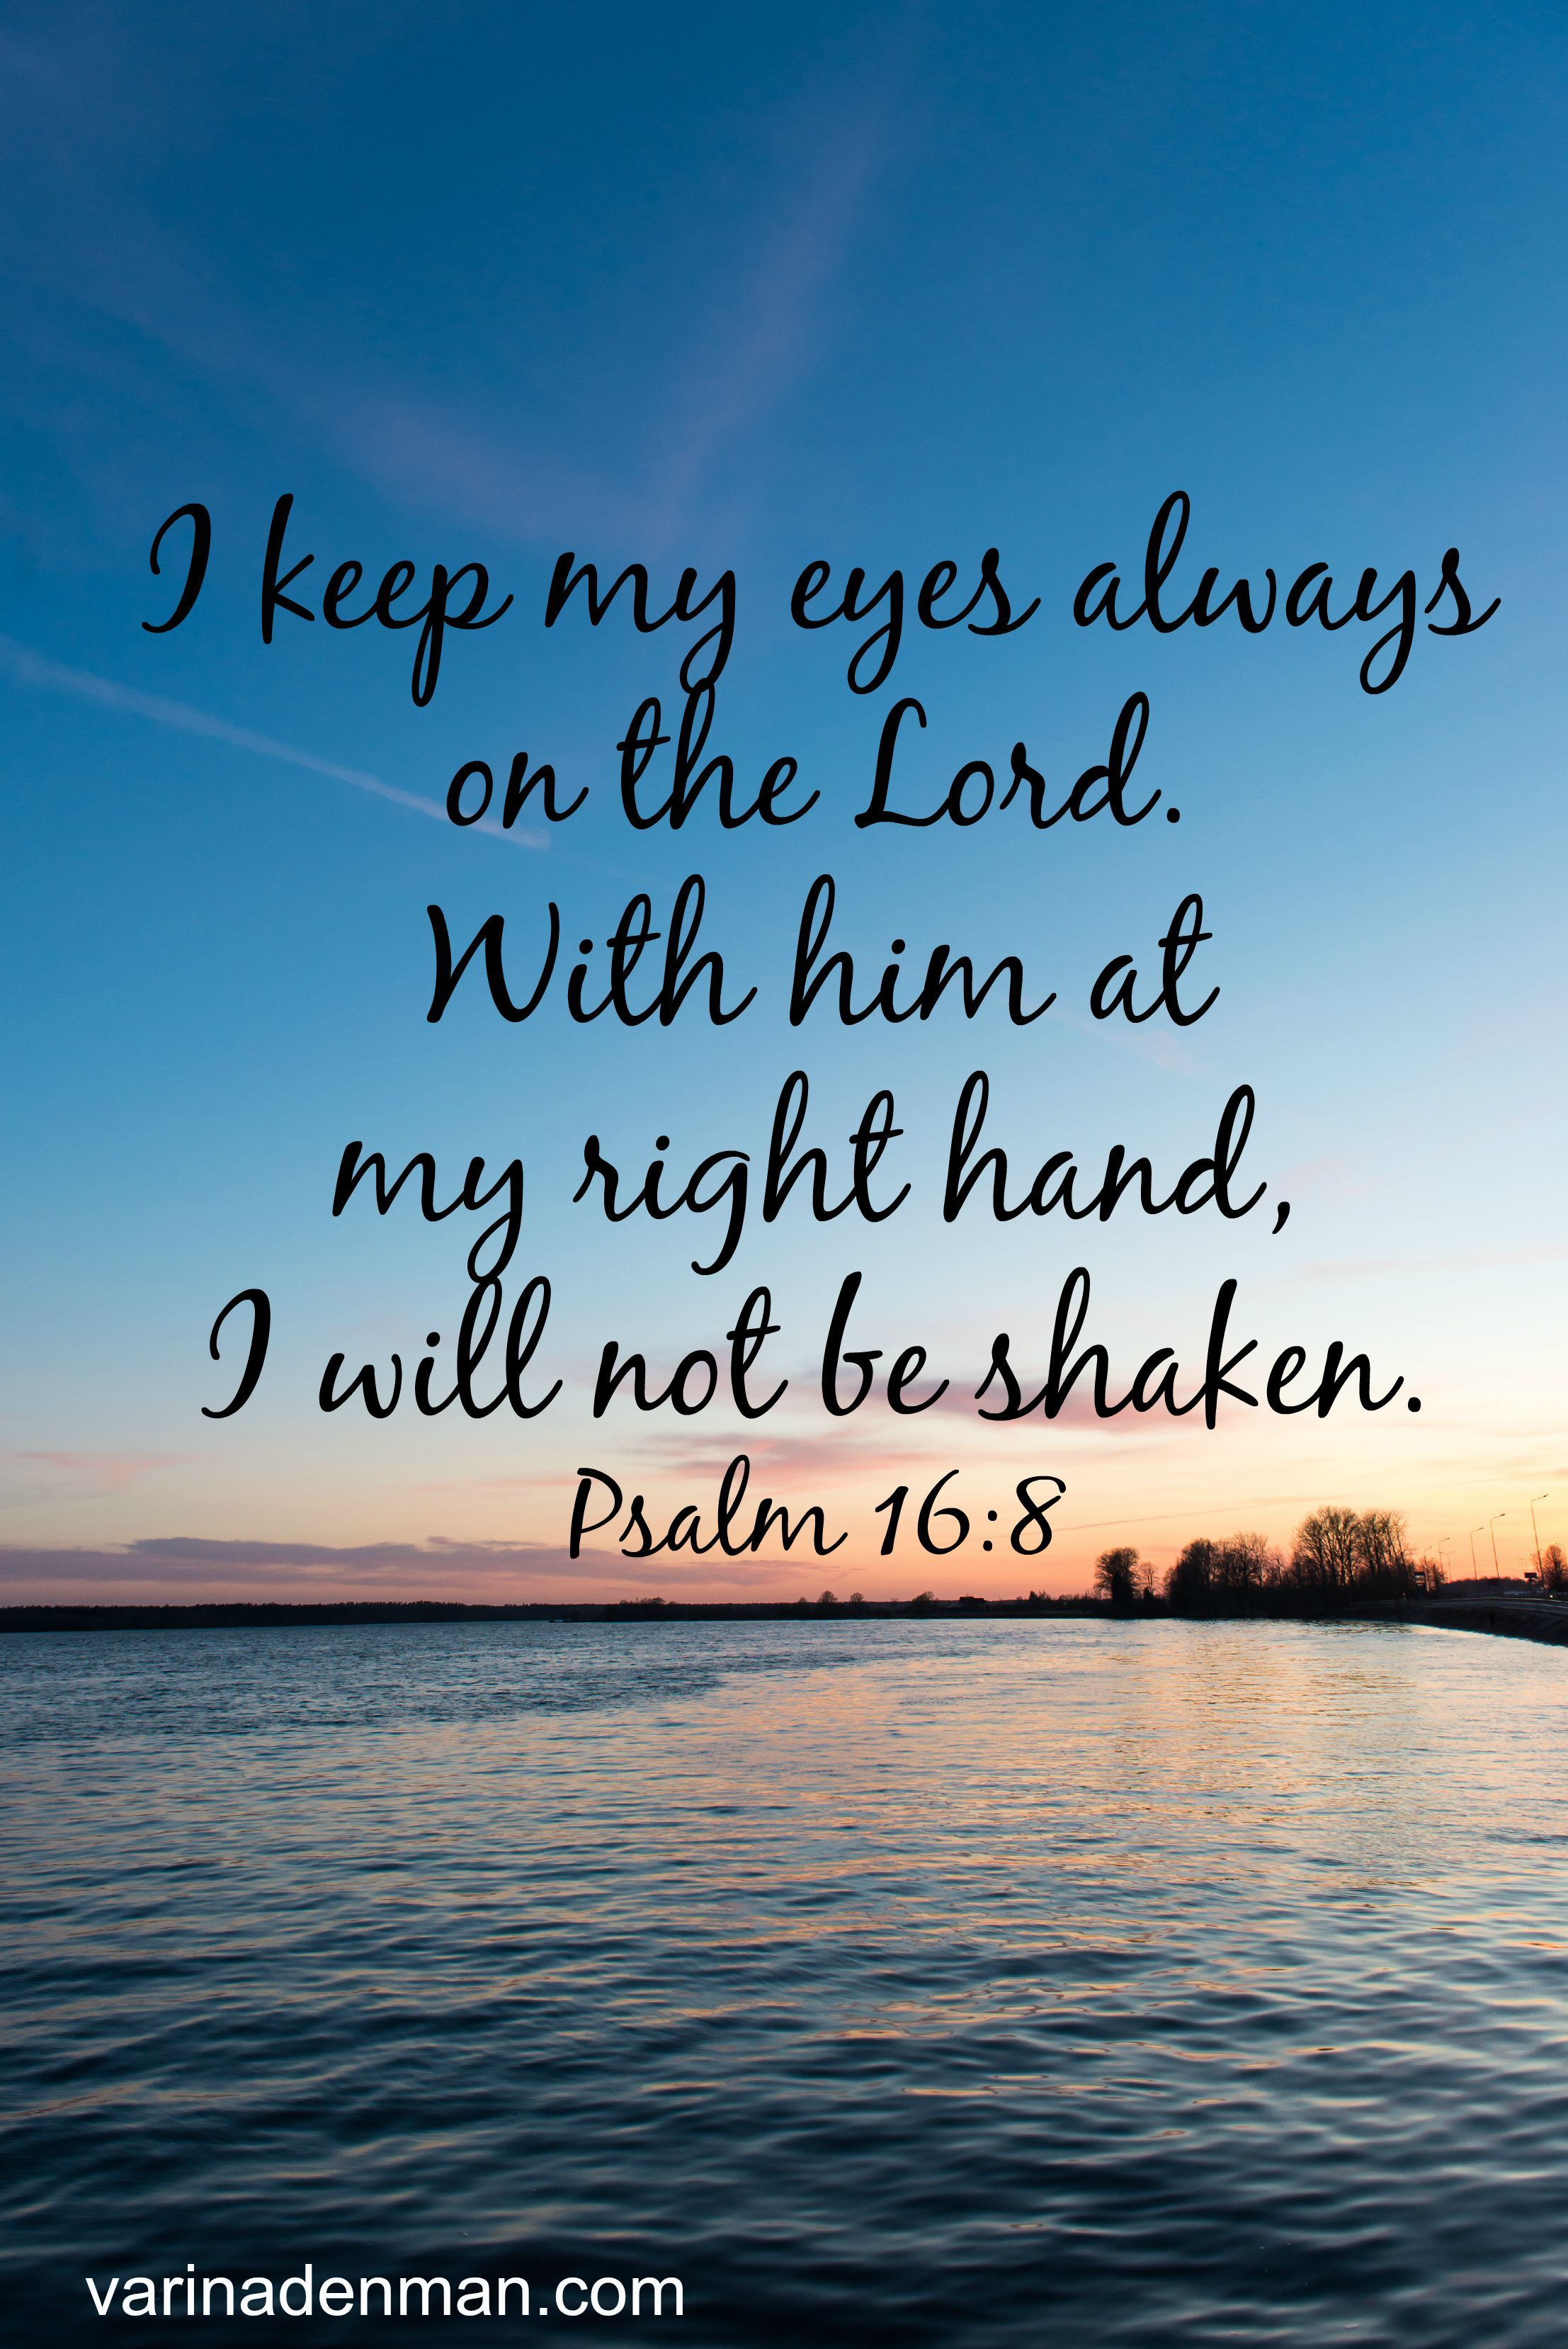 This is so forting I keep my eyes always on the Lord With